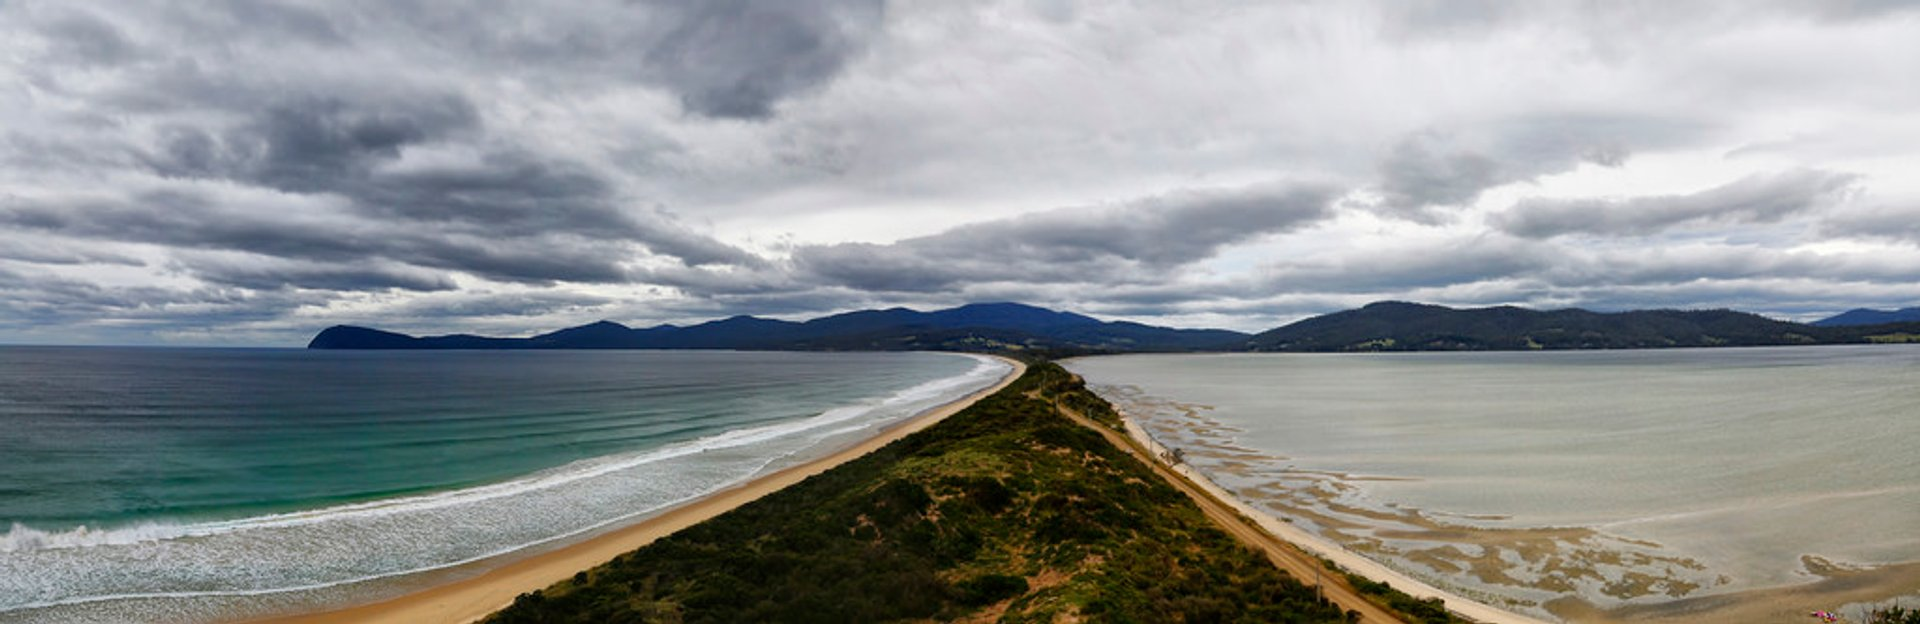 Bruny Island Neck in Tasmania 2020 - Best Time